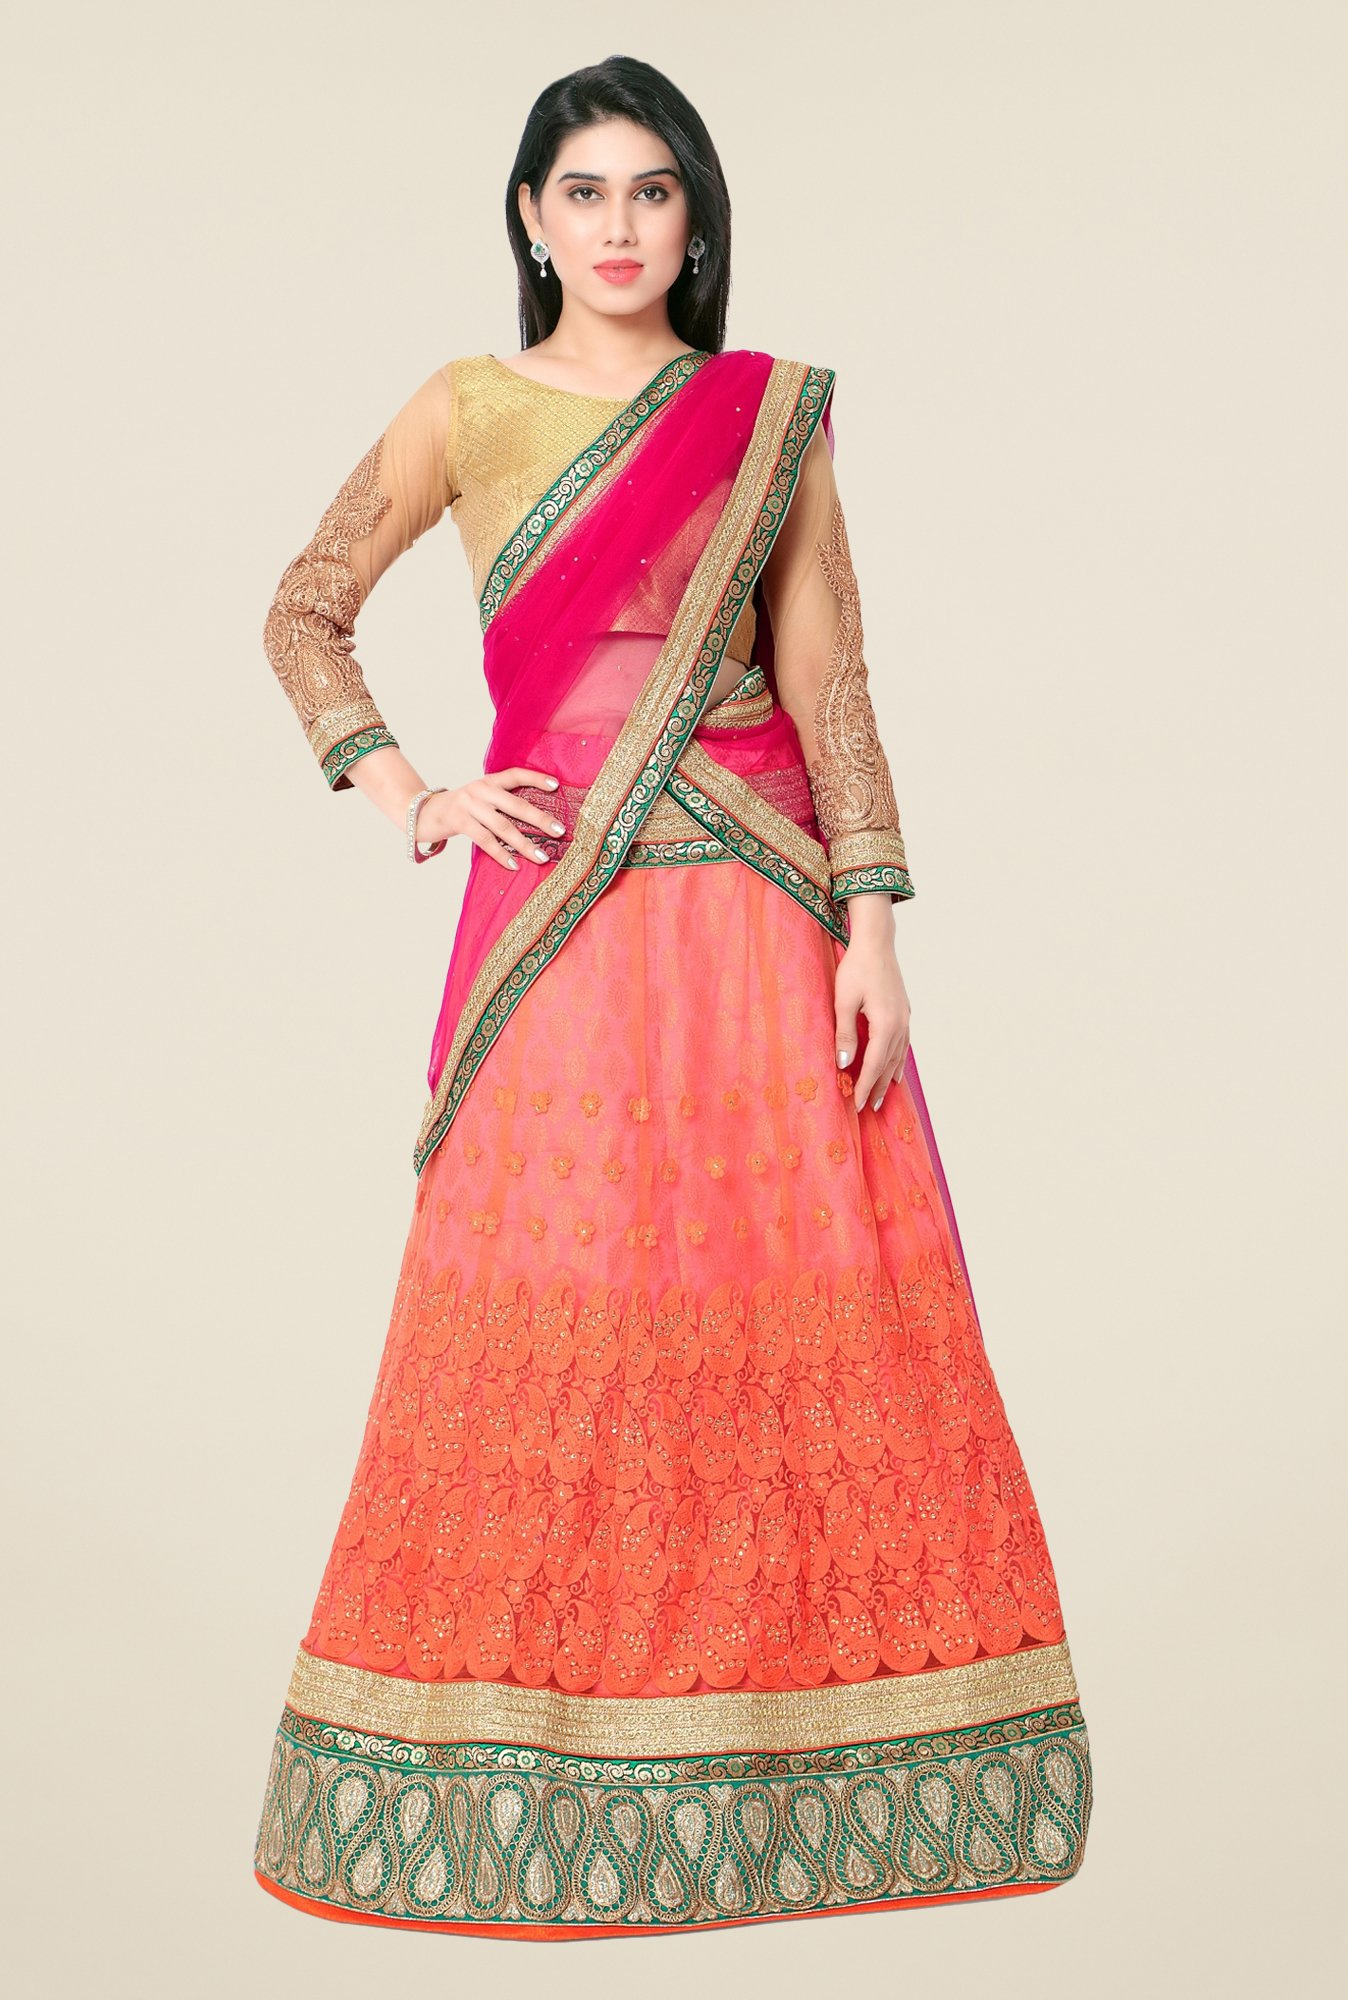 Triveni Orange & Gold Embroidered Lehenga Choli